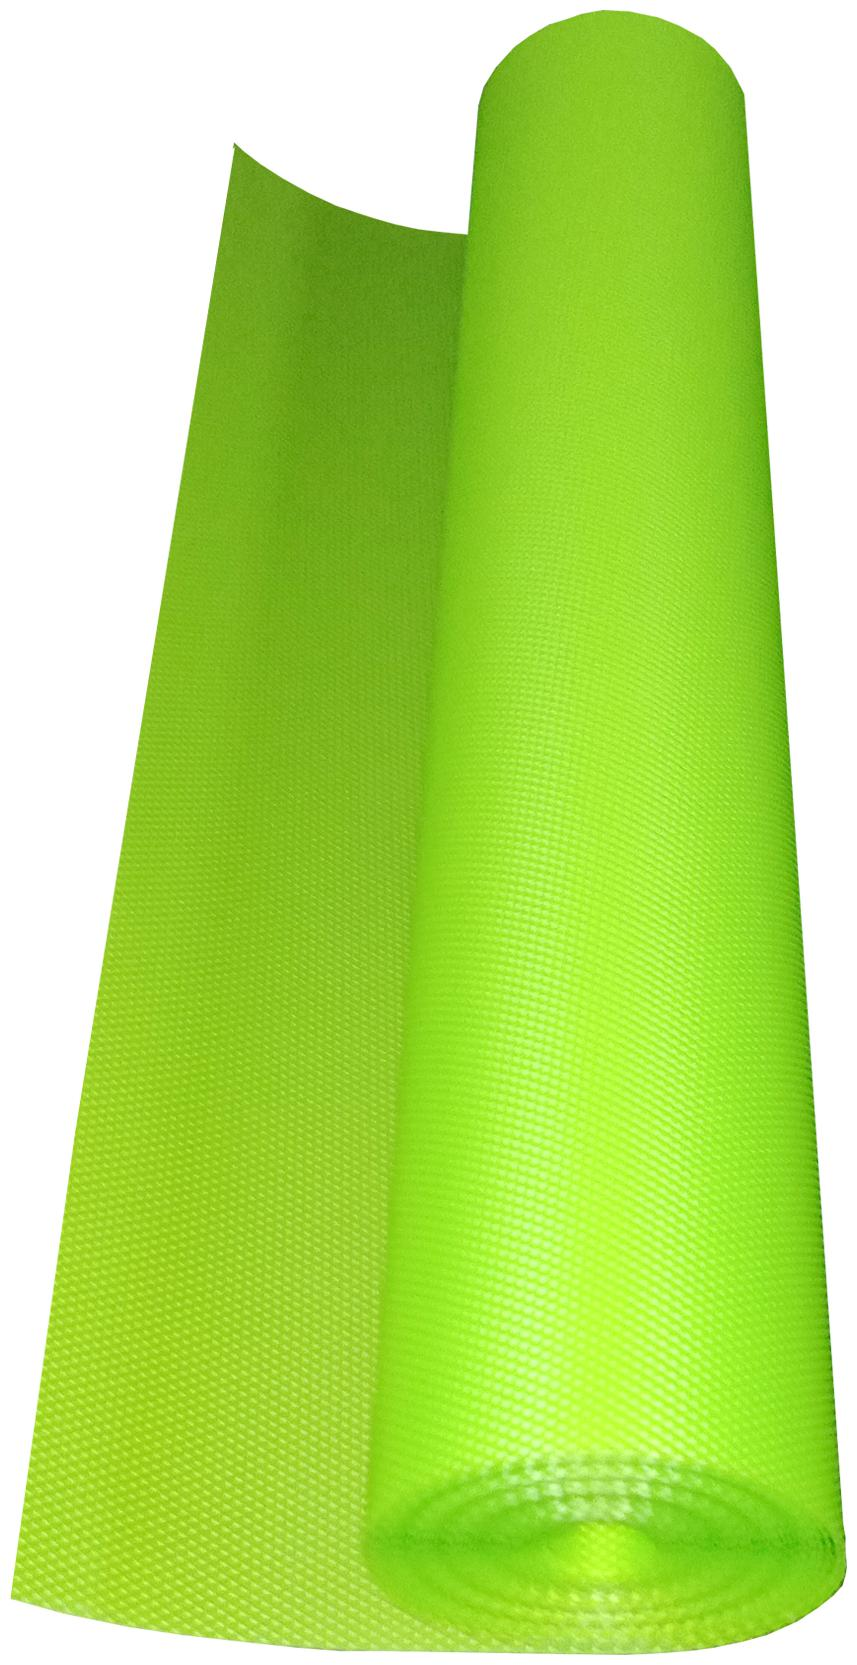 Ronakcreation PVC Anti-Slip Eva Mat Full Length 3 Meter For Kitchen;Drawer;Fridge Mats (Green)